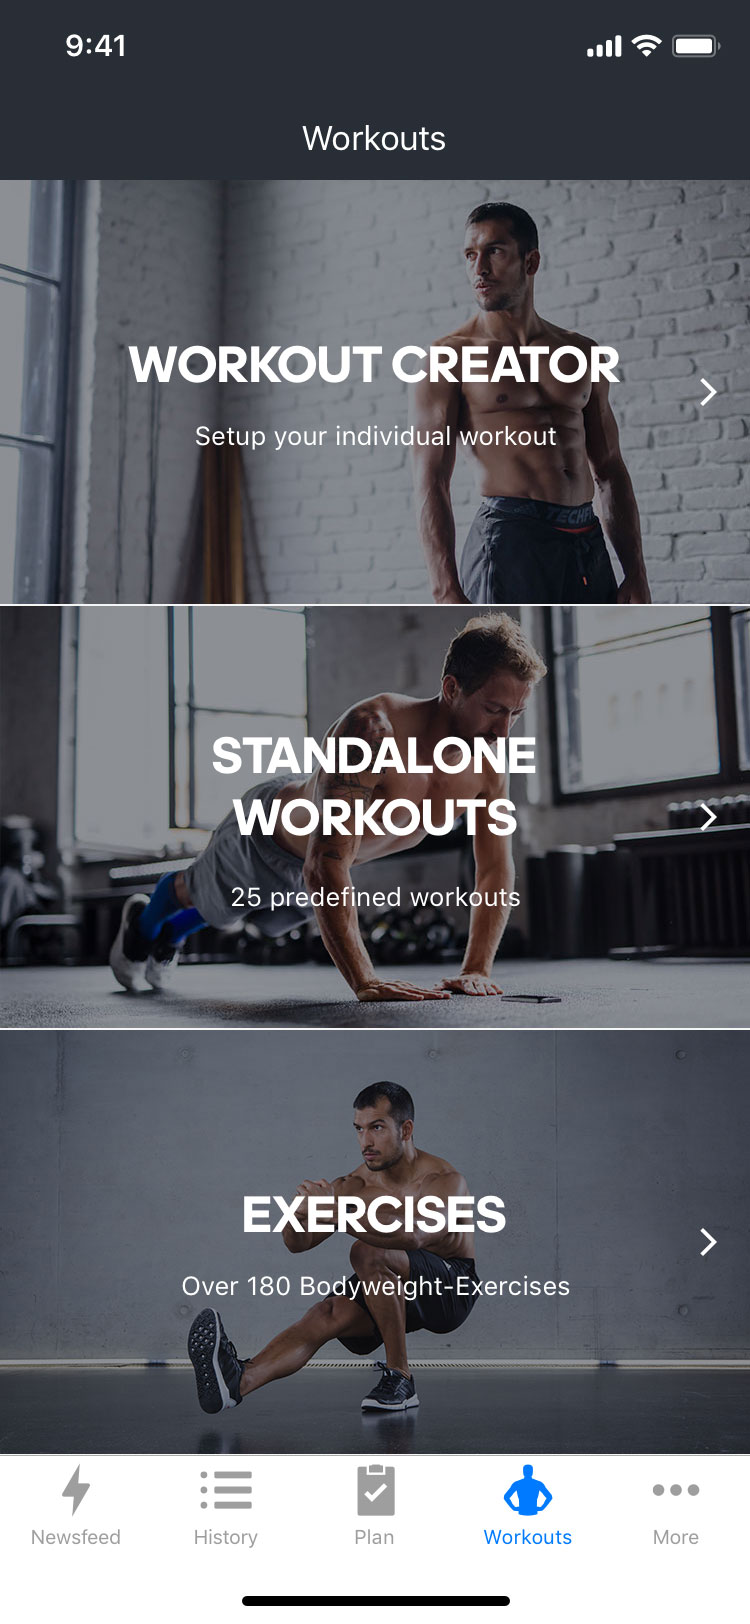 mobile screen showing an overview of workout types